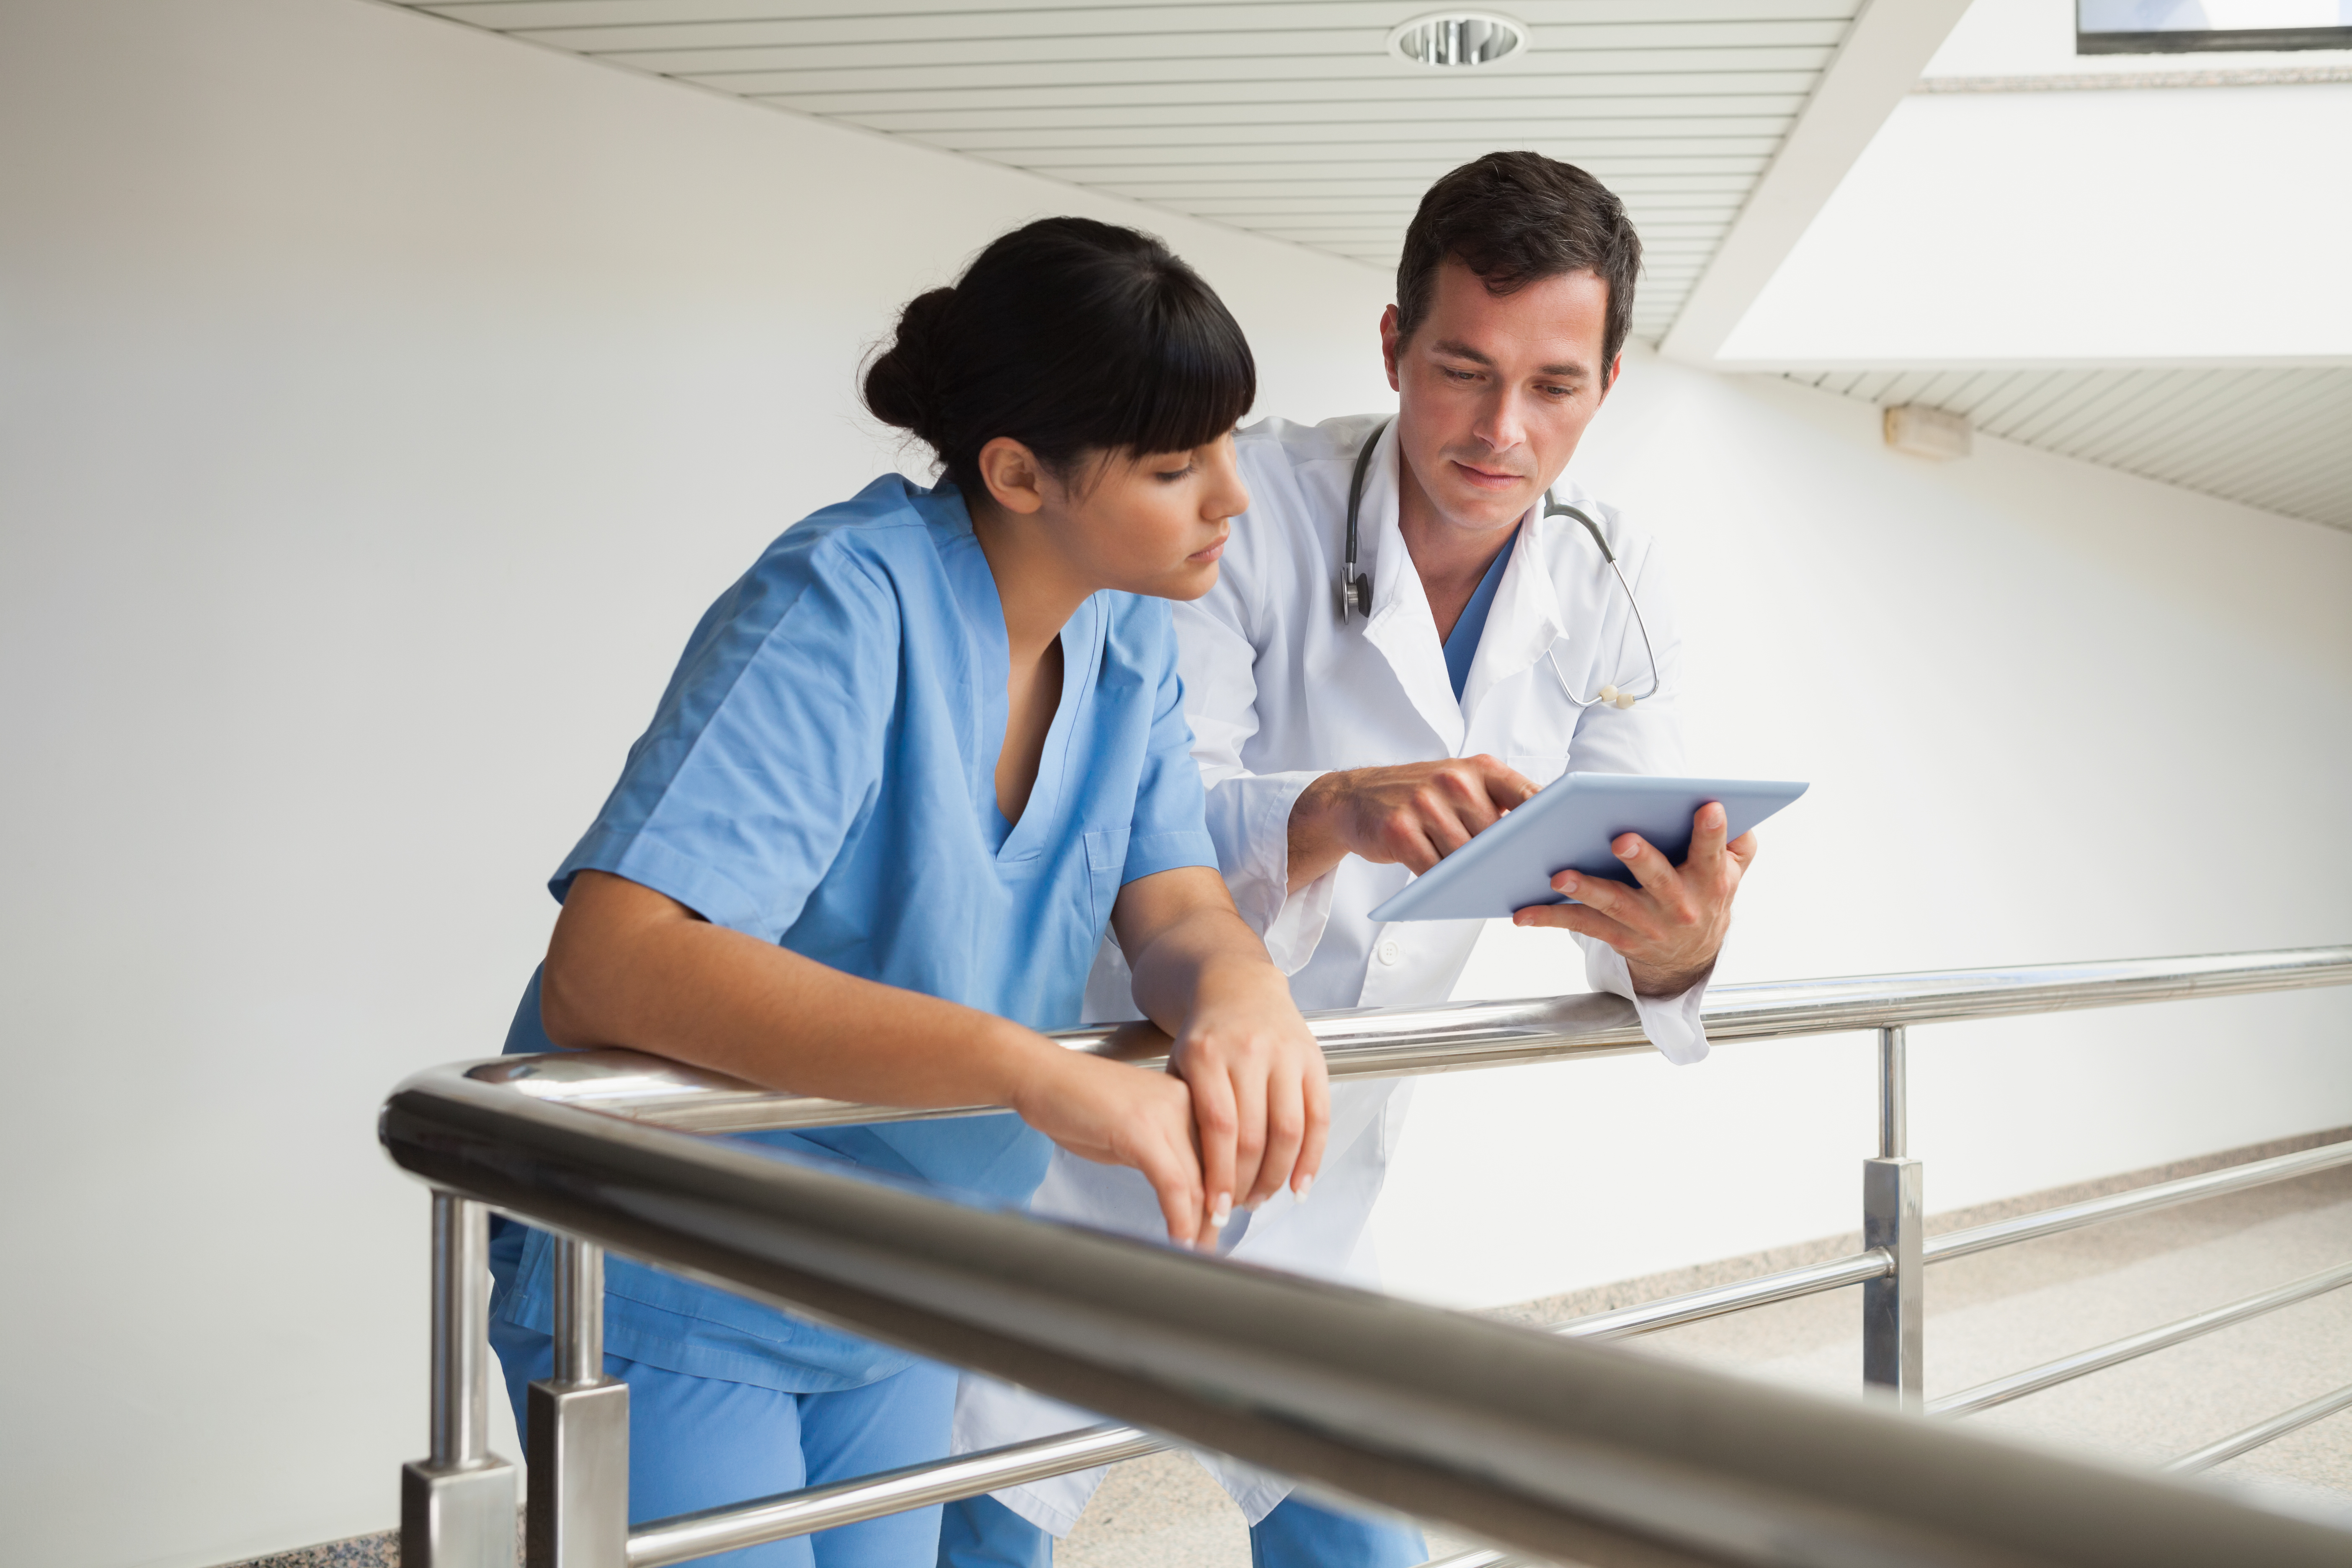 Thinkstock_155783873_doctors with ipad